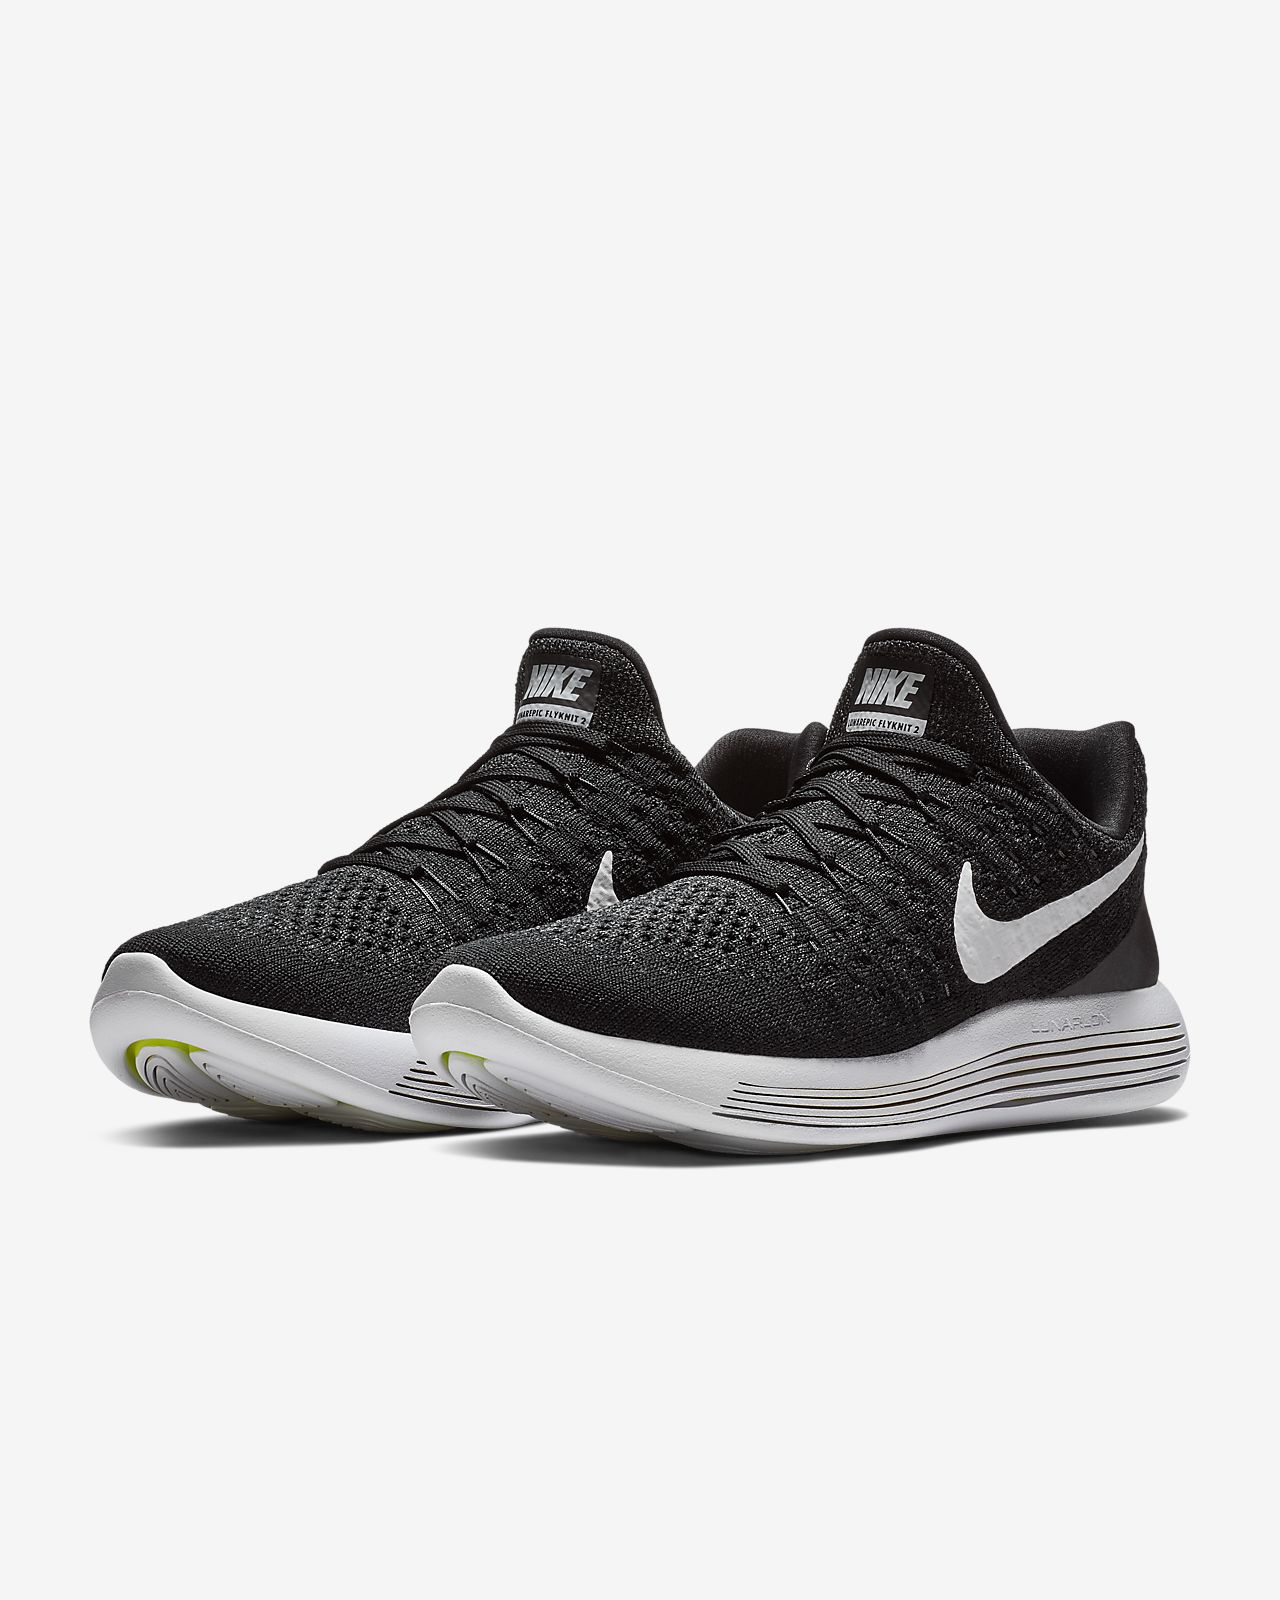 quality design 1e001 cafaa Nike LunarEpic Low Flyknit 2 Women's Running Shoe